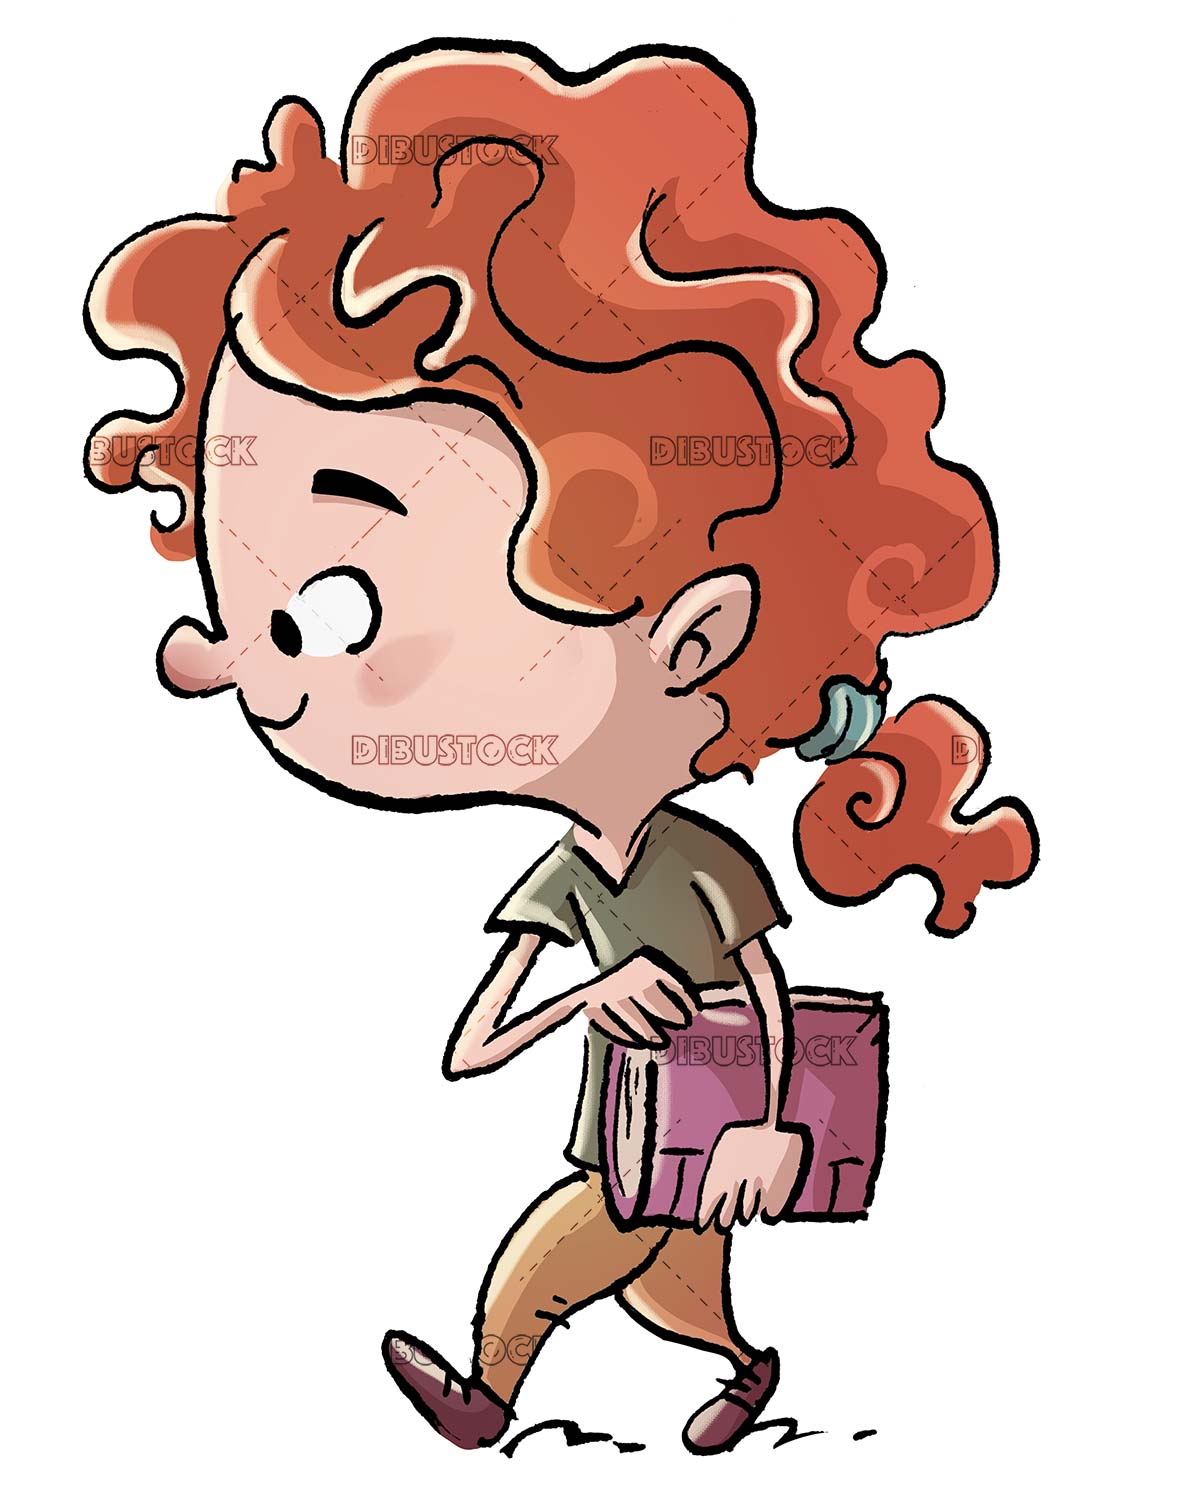 redhead girl walking with a notebook under her arm